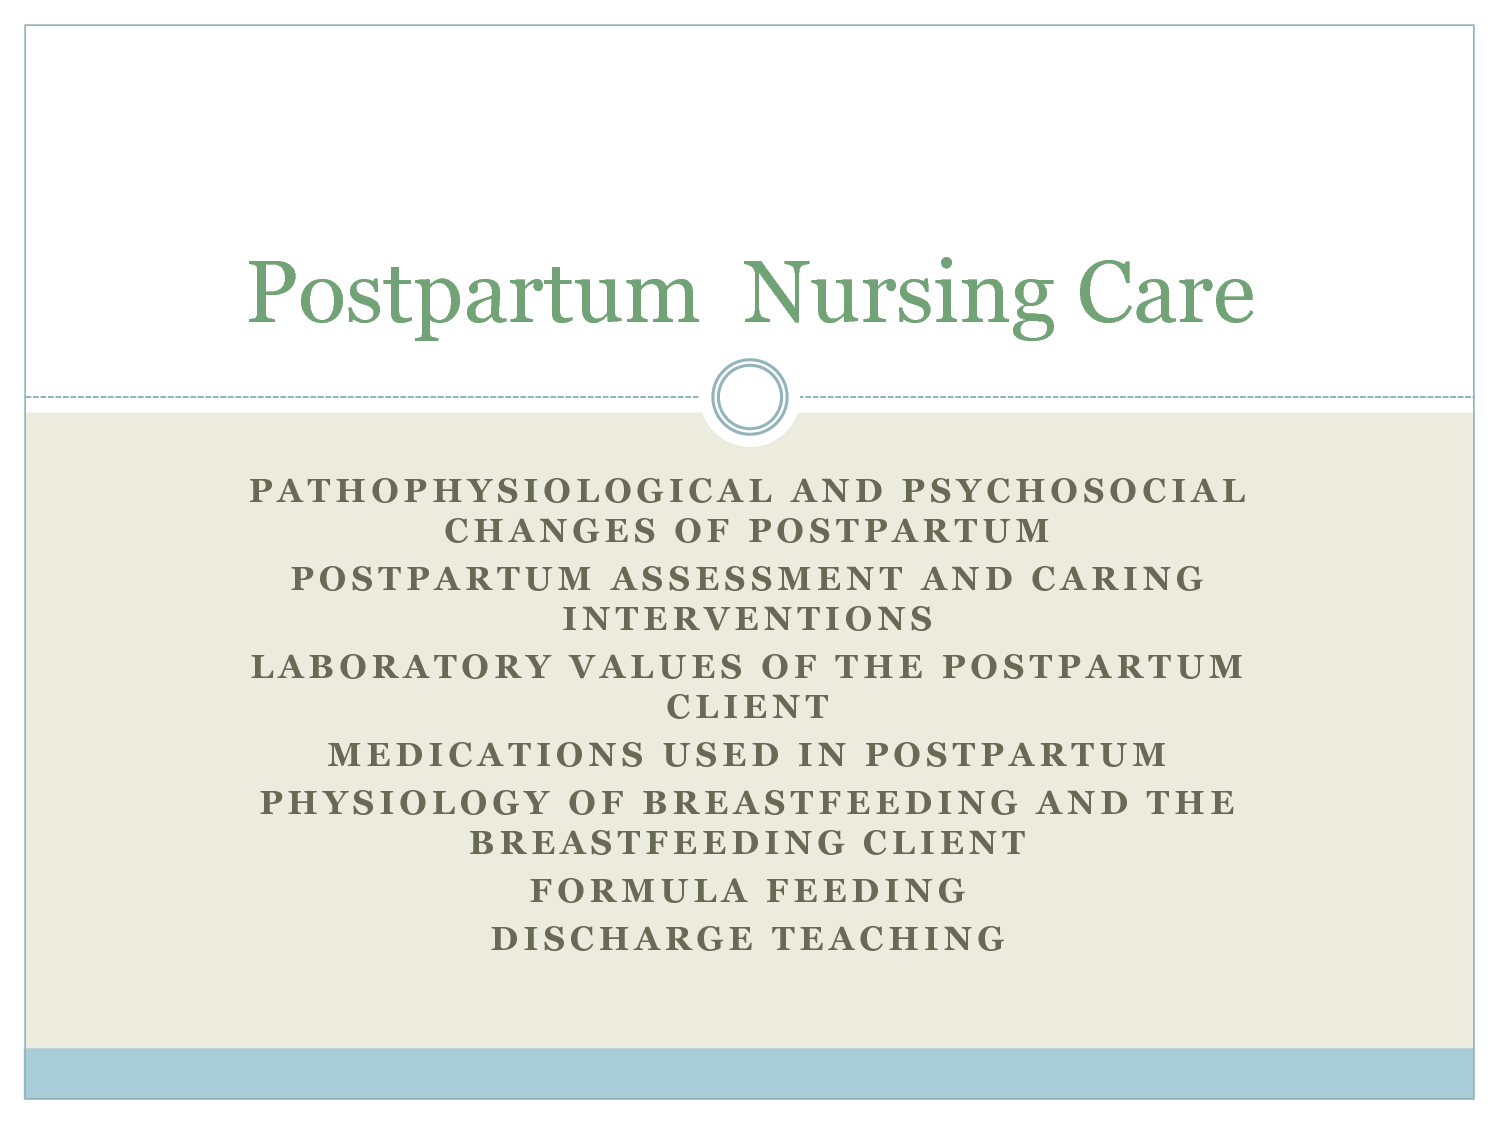 postpartum nurse quotes quotesgram postpartum nurse quotes